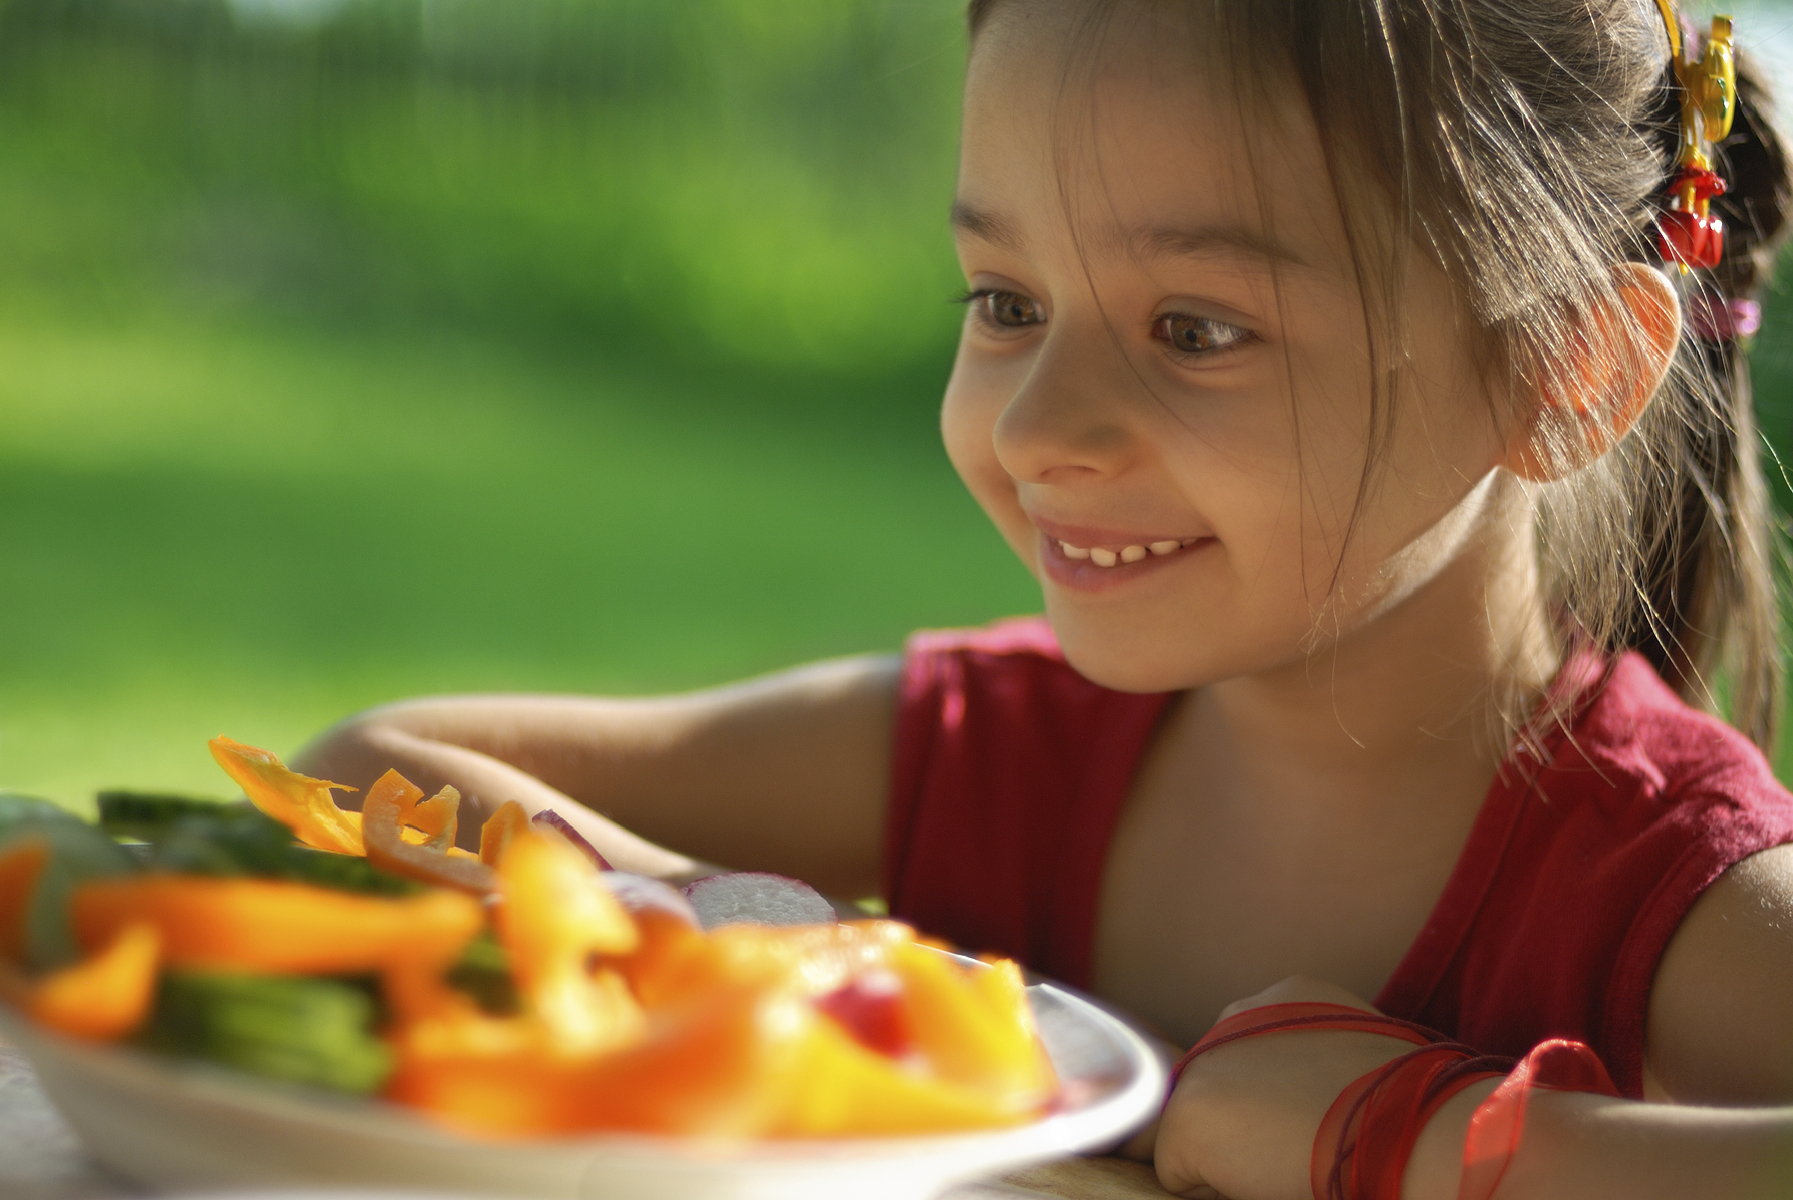 Teaching kids to cook may make them eat healthier - CBS News